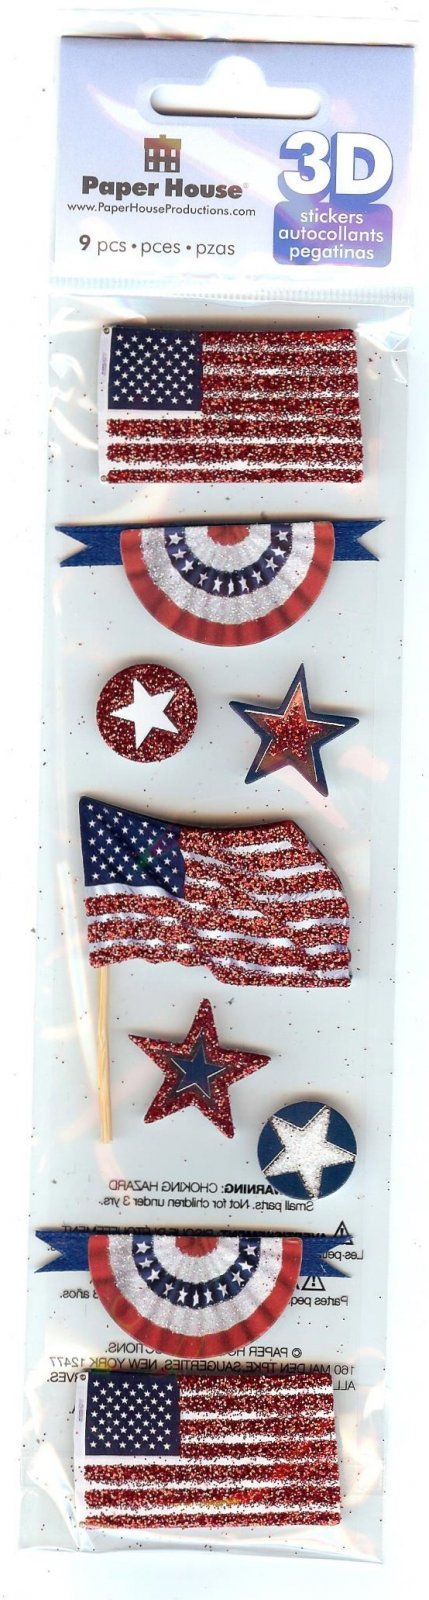 Paper House 3D Stickers - American Flags